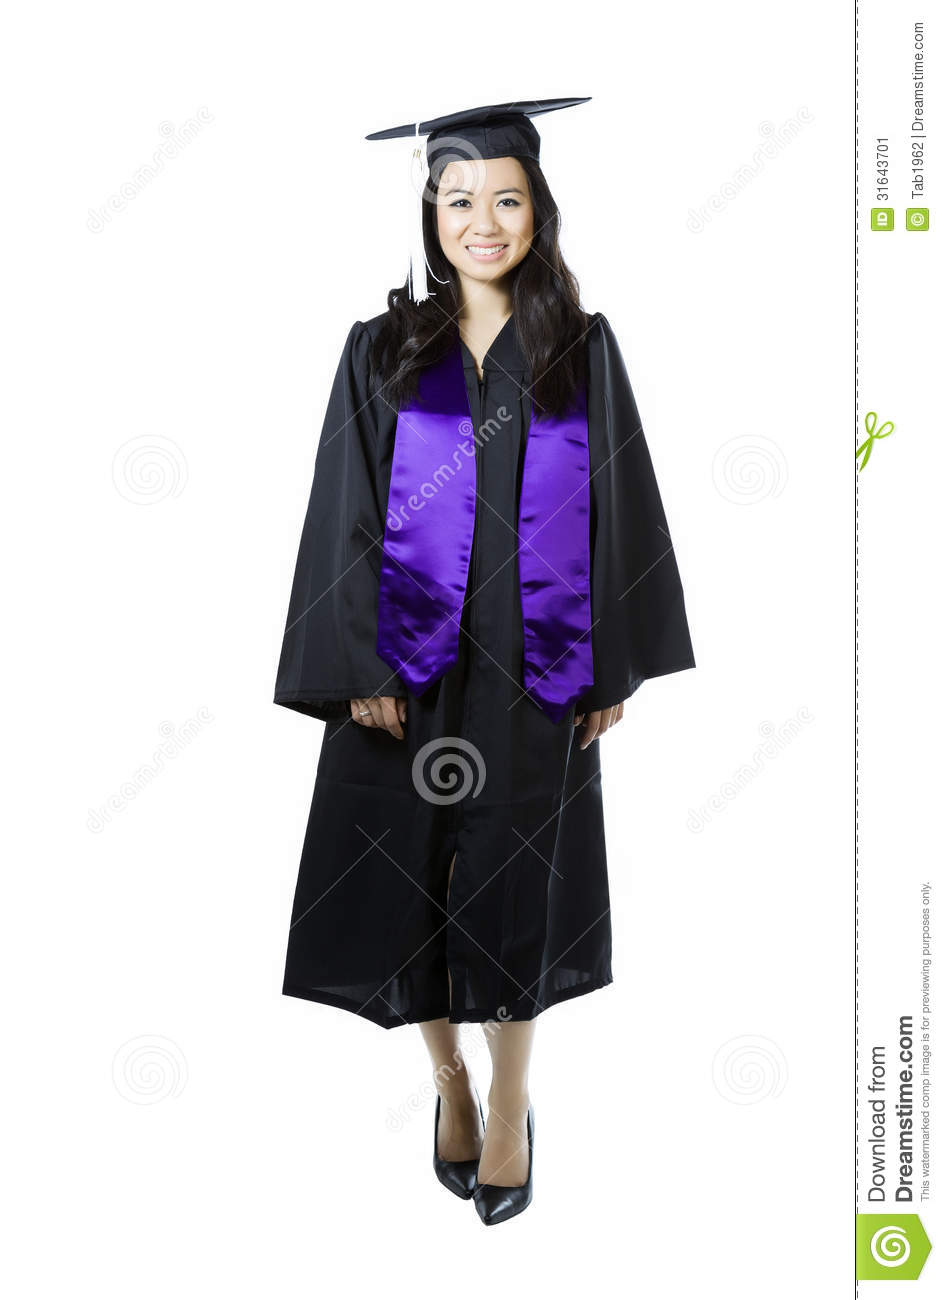 college graduation cap and gown | Gowns Ideas